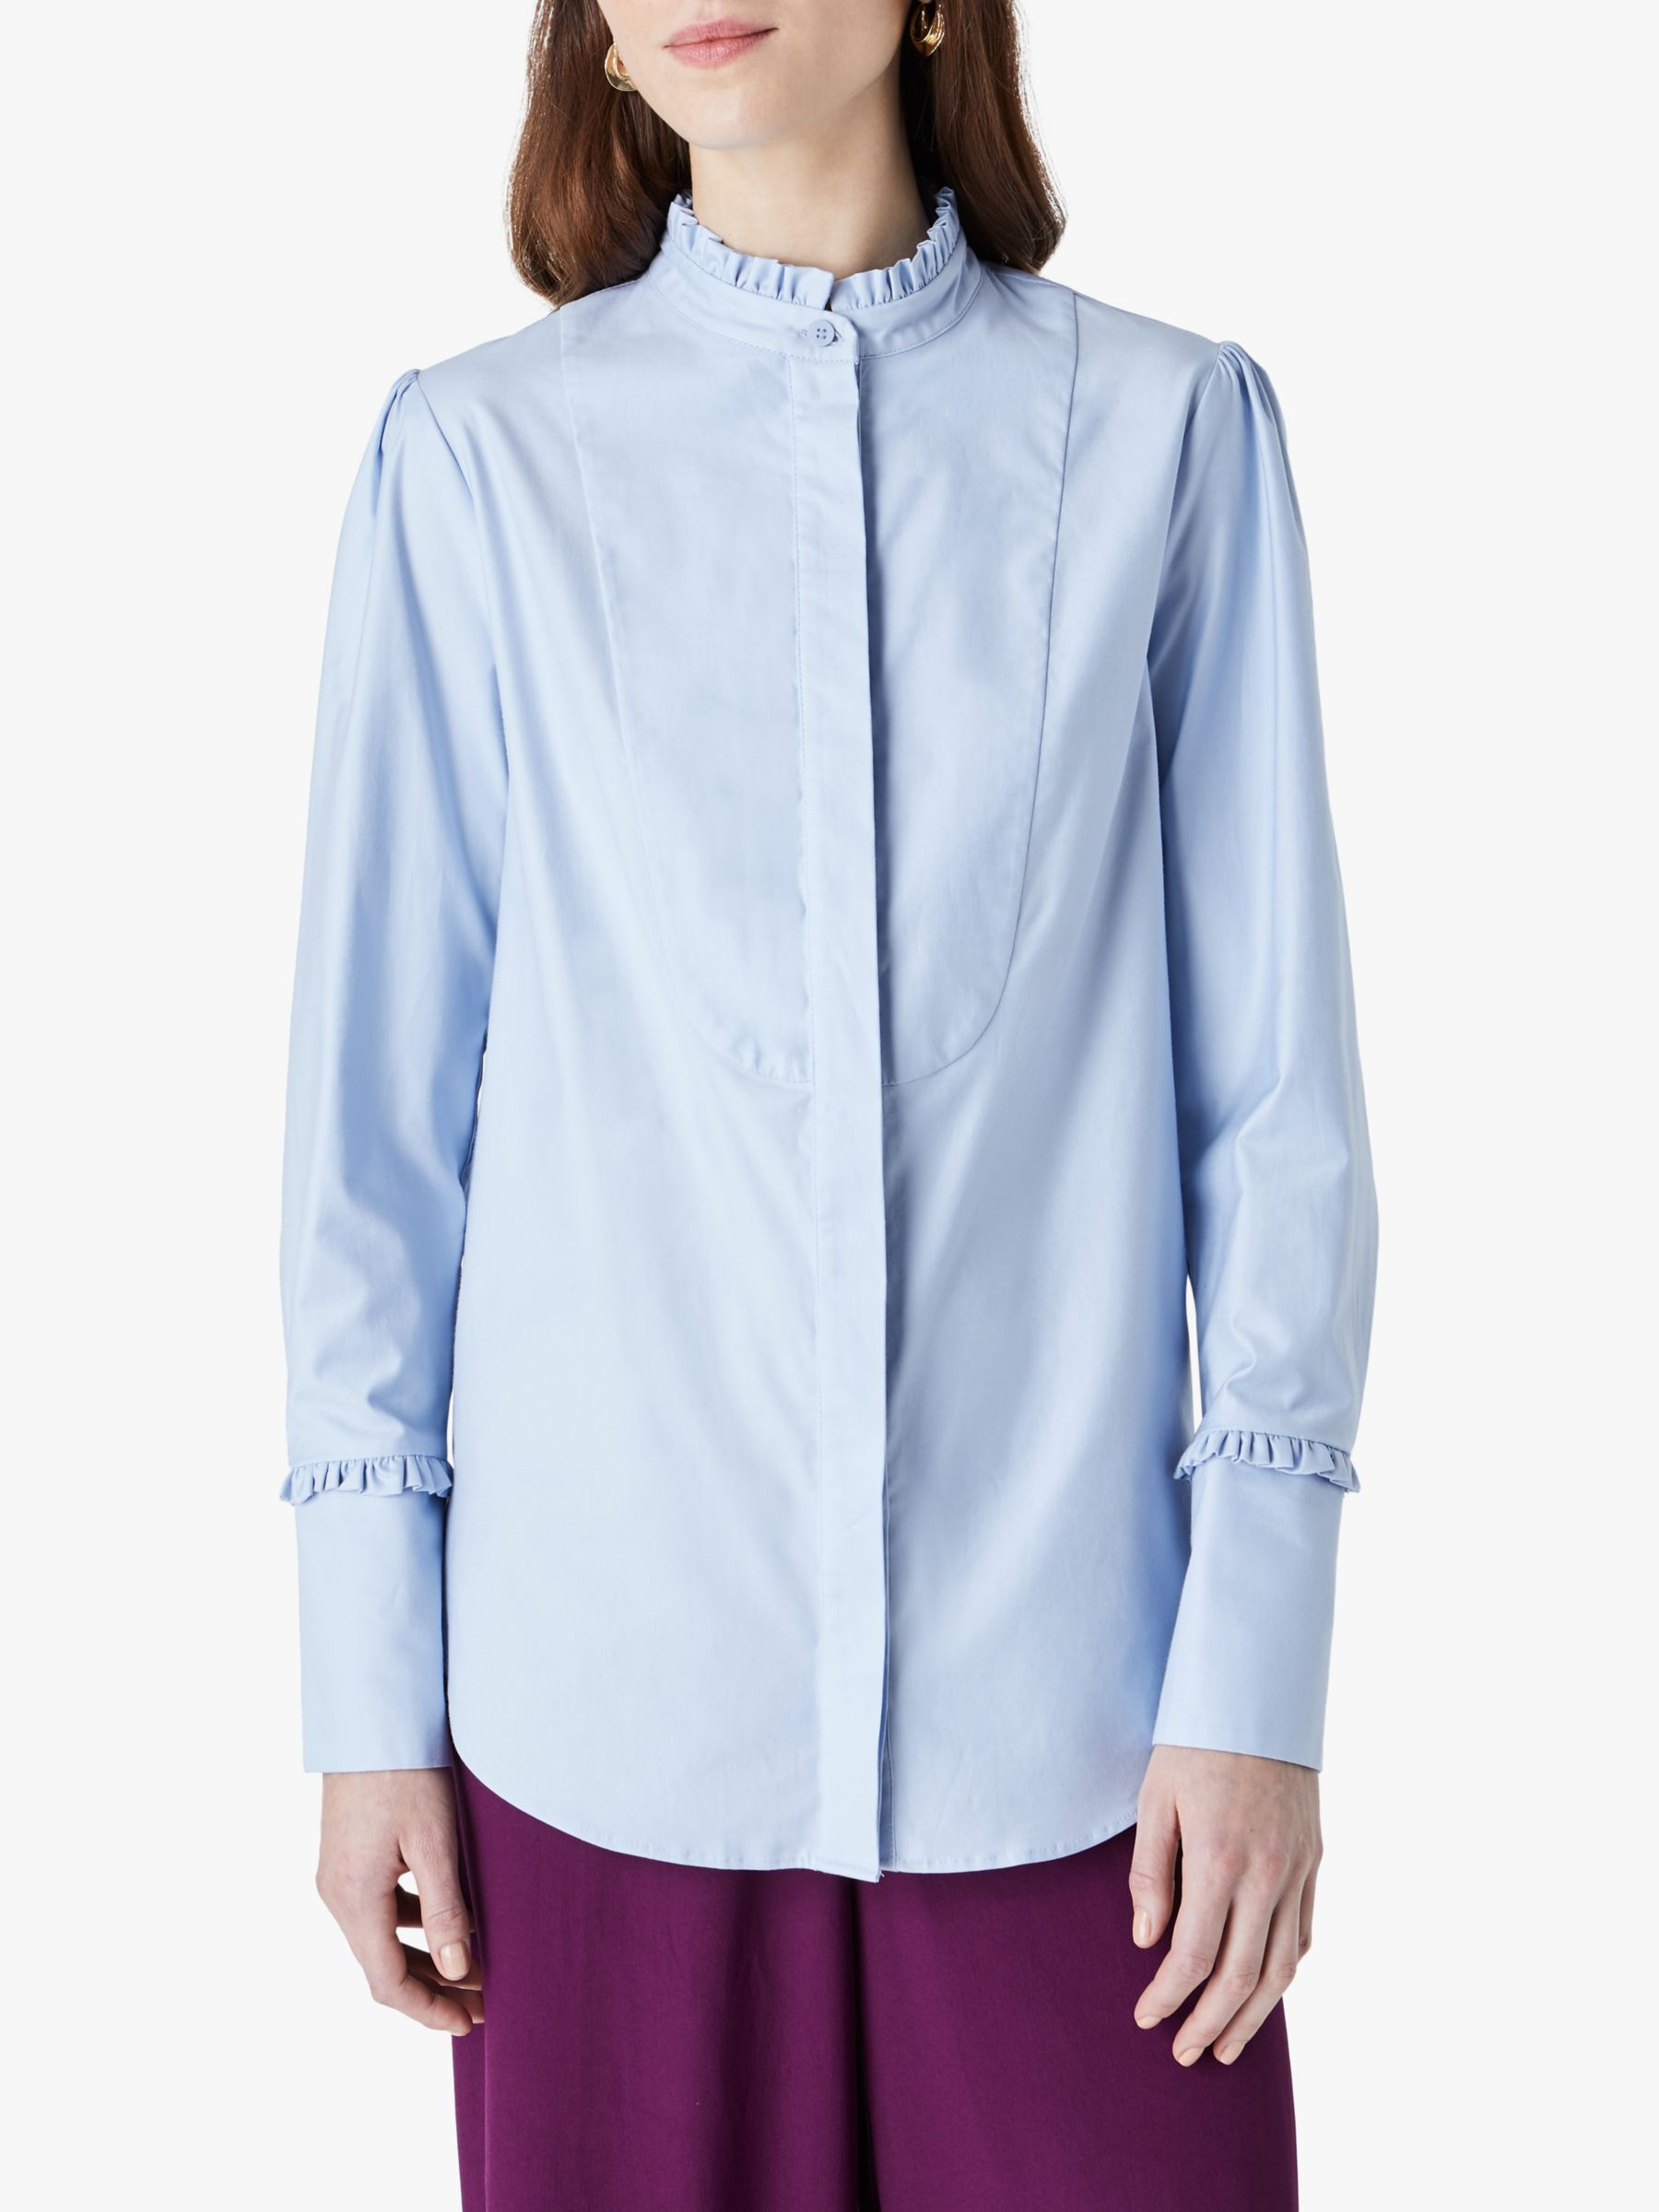 Finery Finery Ayden Cotton Frill Detail Blouse, Light Blue